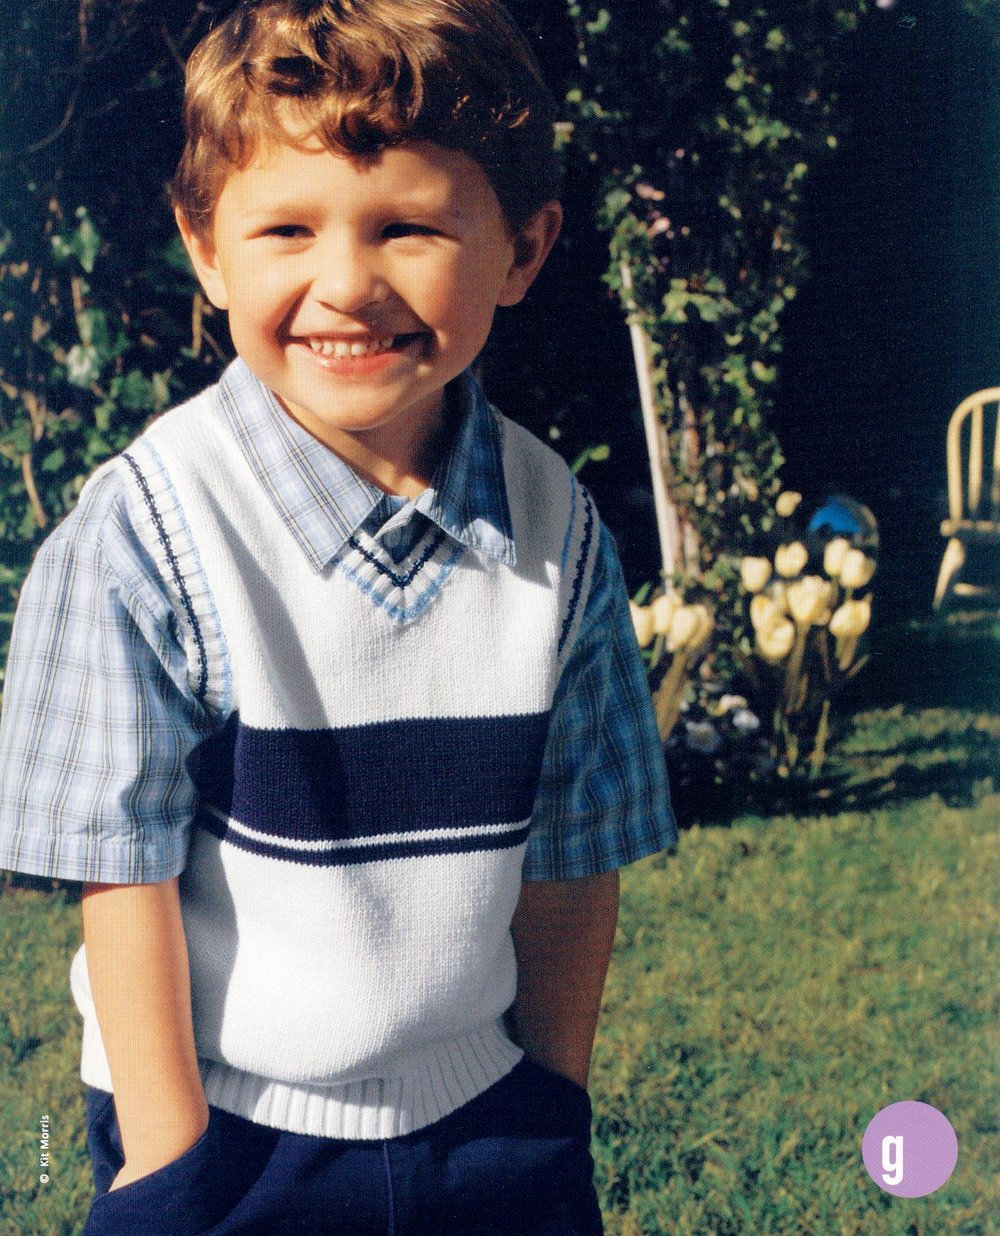 Photo of a smiling kid wearing his dress-up Easter clothes hands stuffed in his pants pockets standing in a sunny garden location